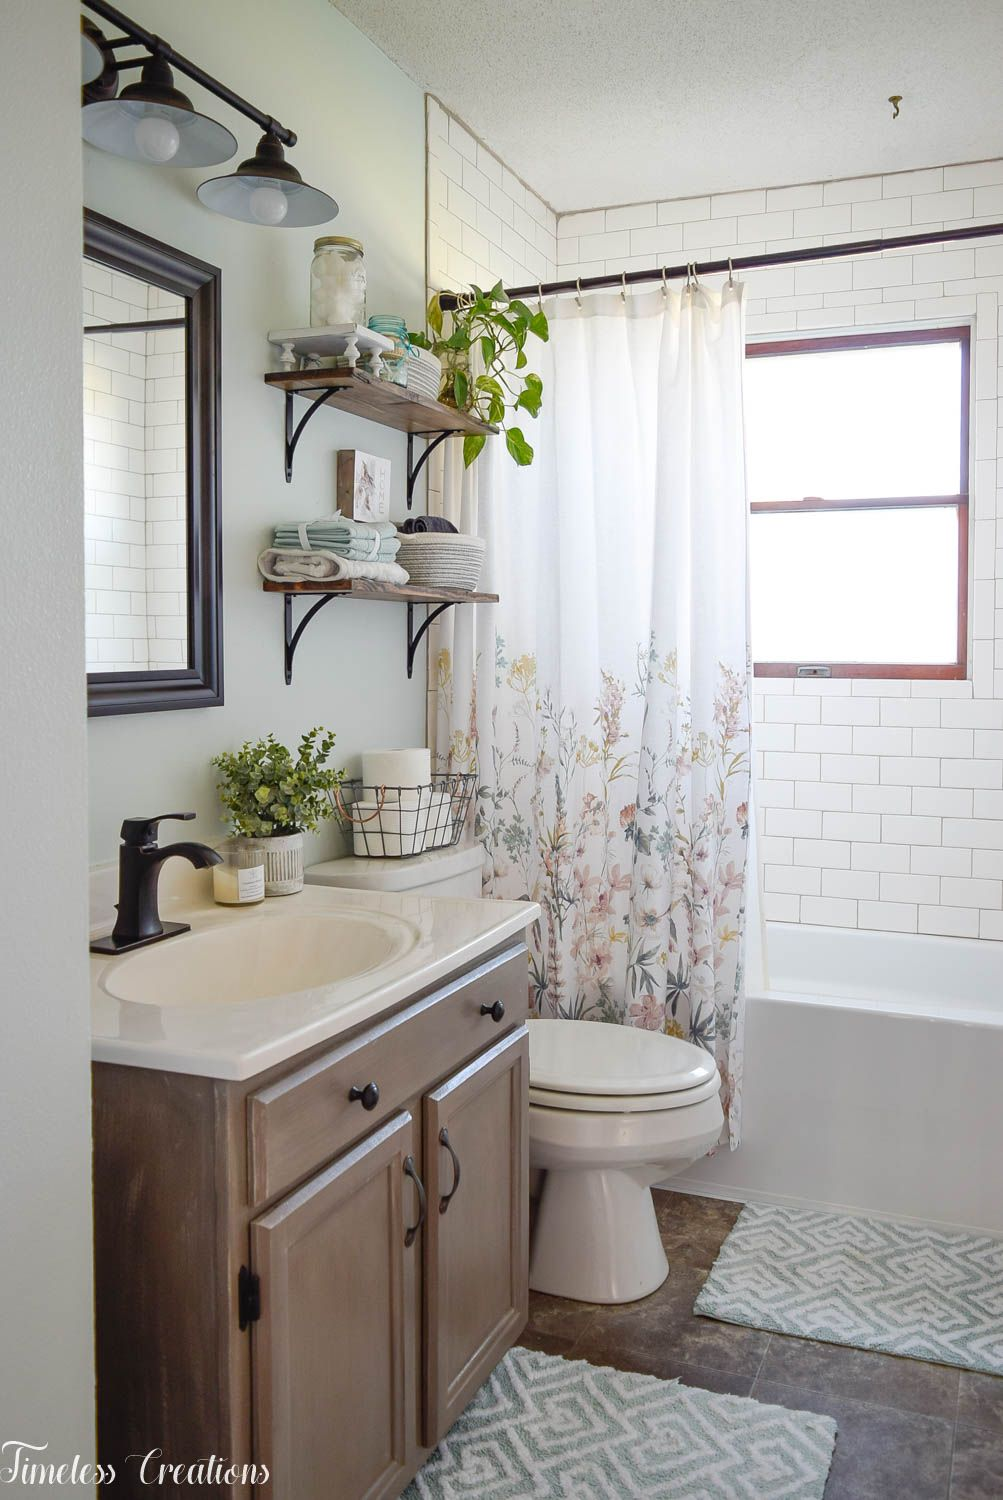 Bathroom Makeover Reveal at Kristen's House- One Room Challenge #bathroommakeovers